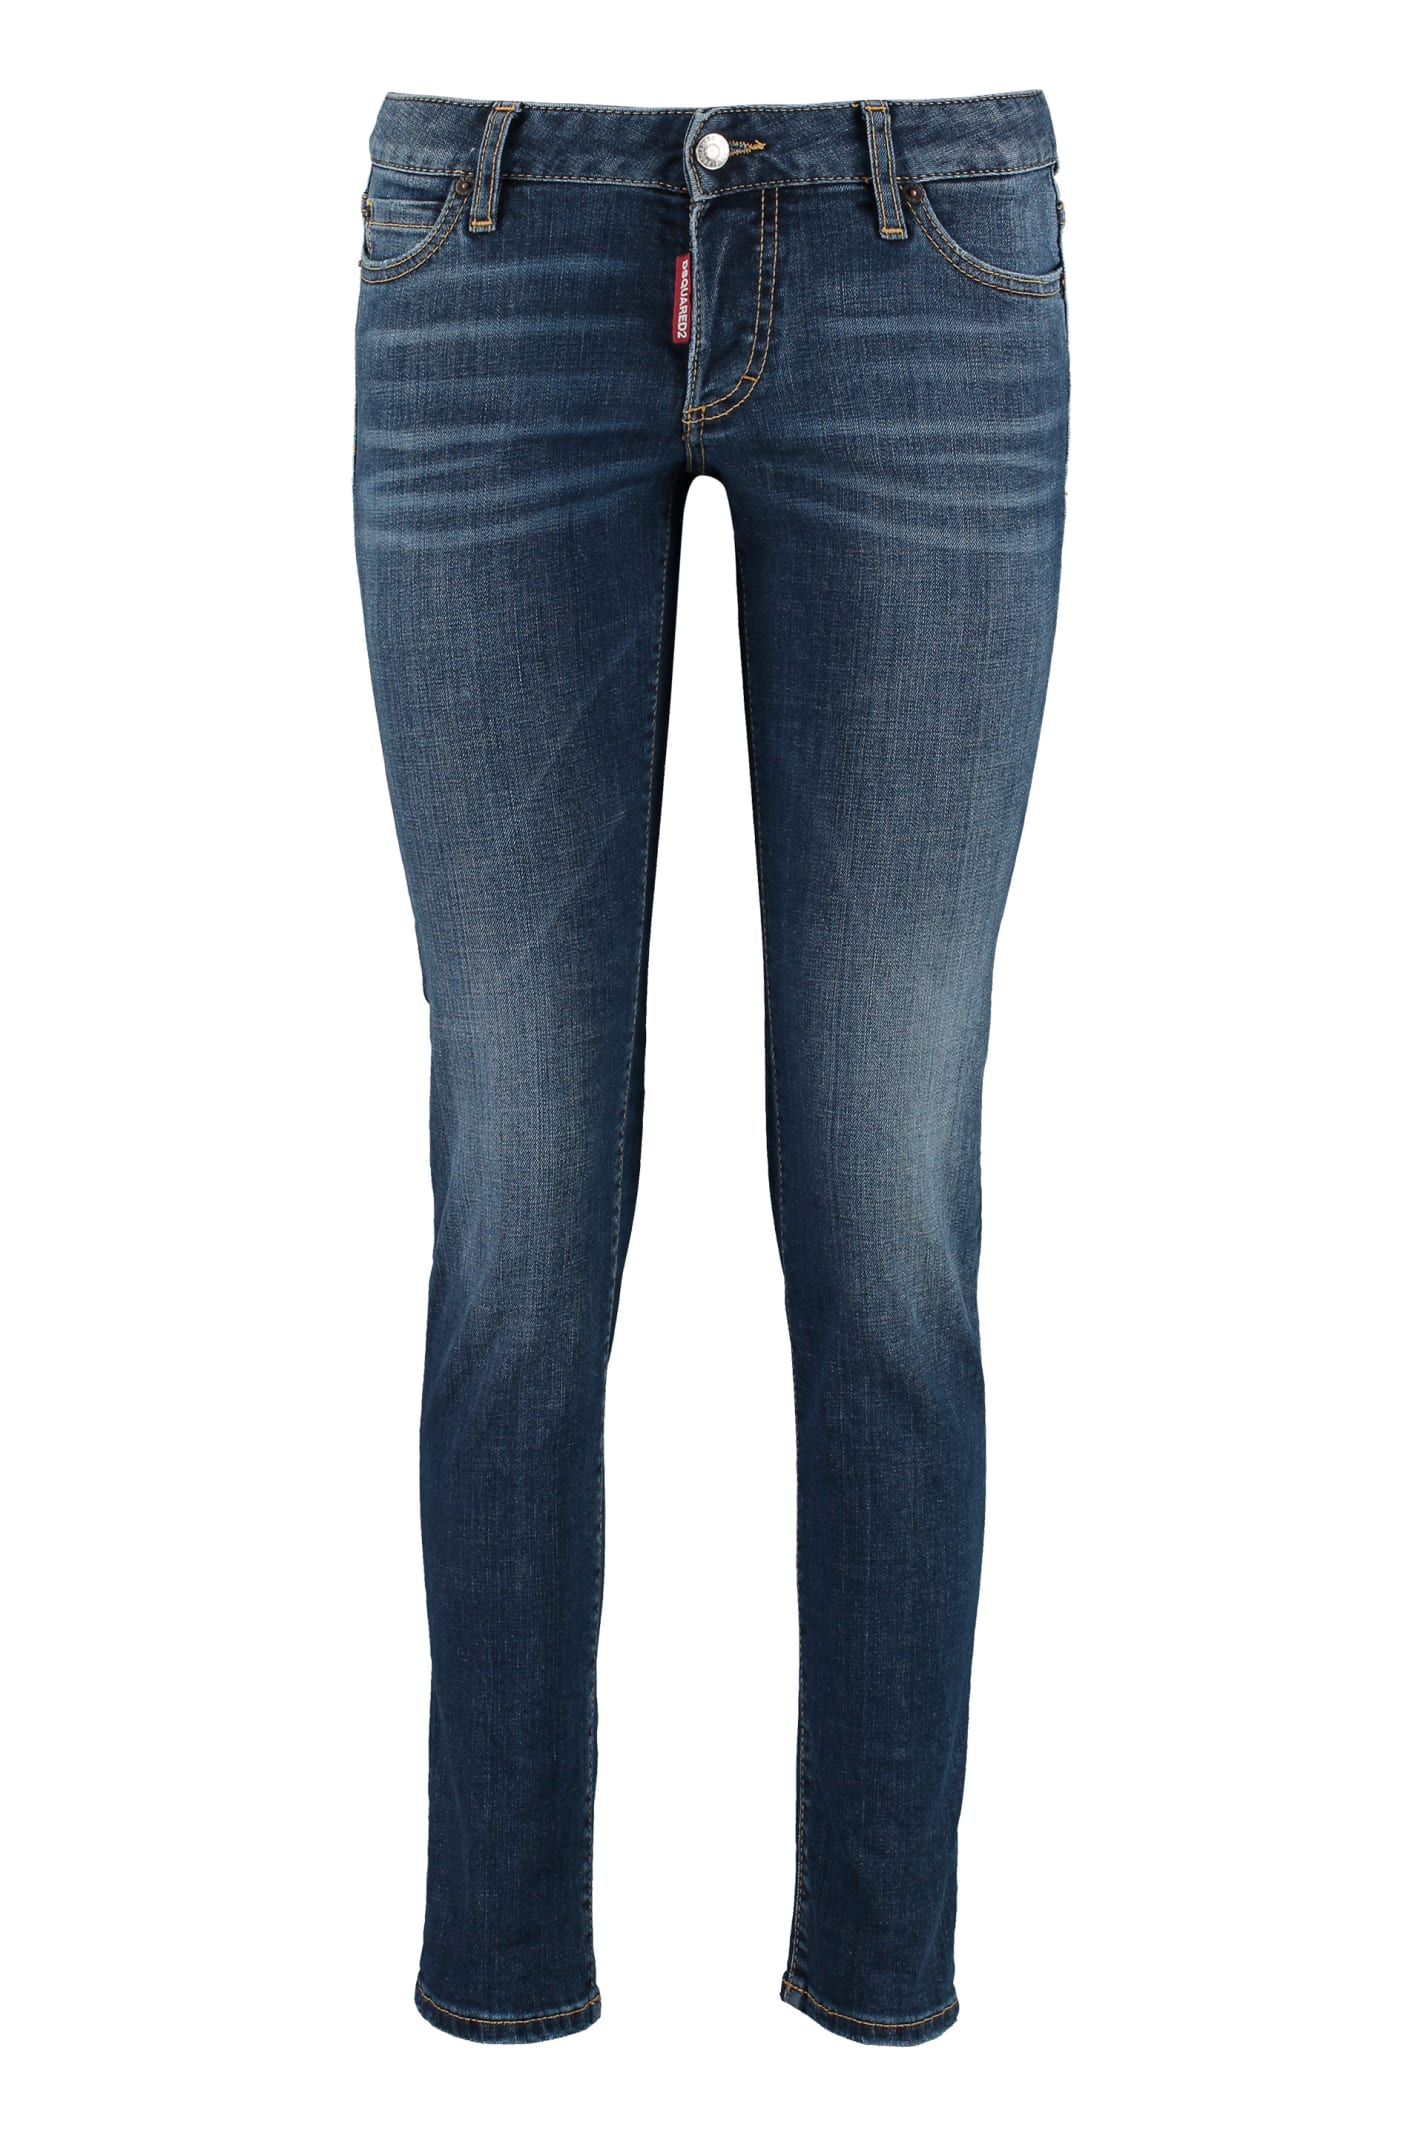 Dsquared2 Jennifer 5-pocket Jeans